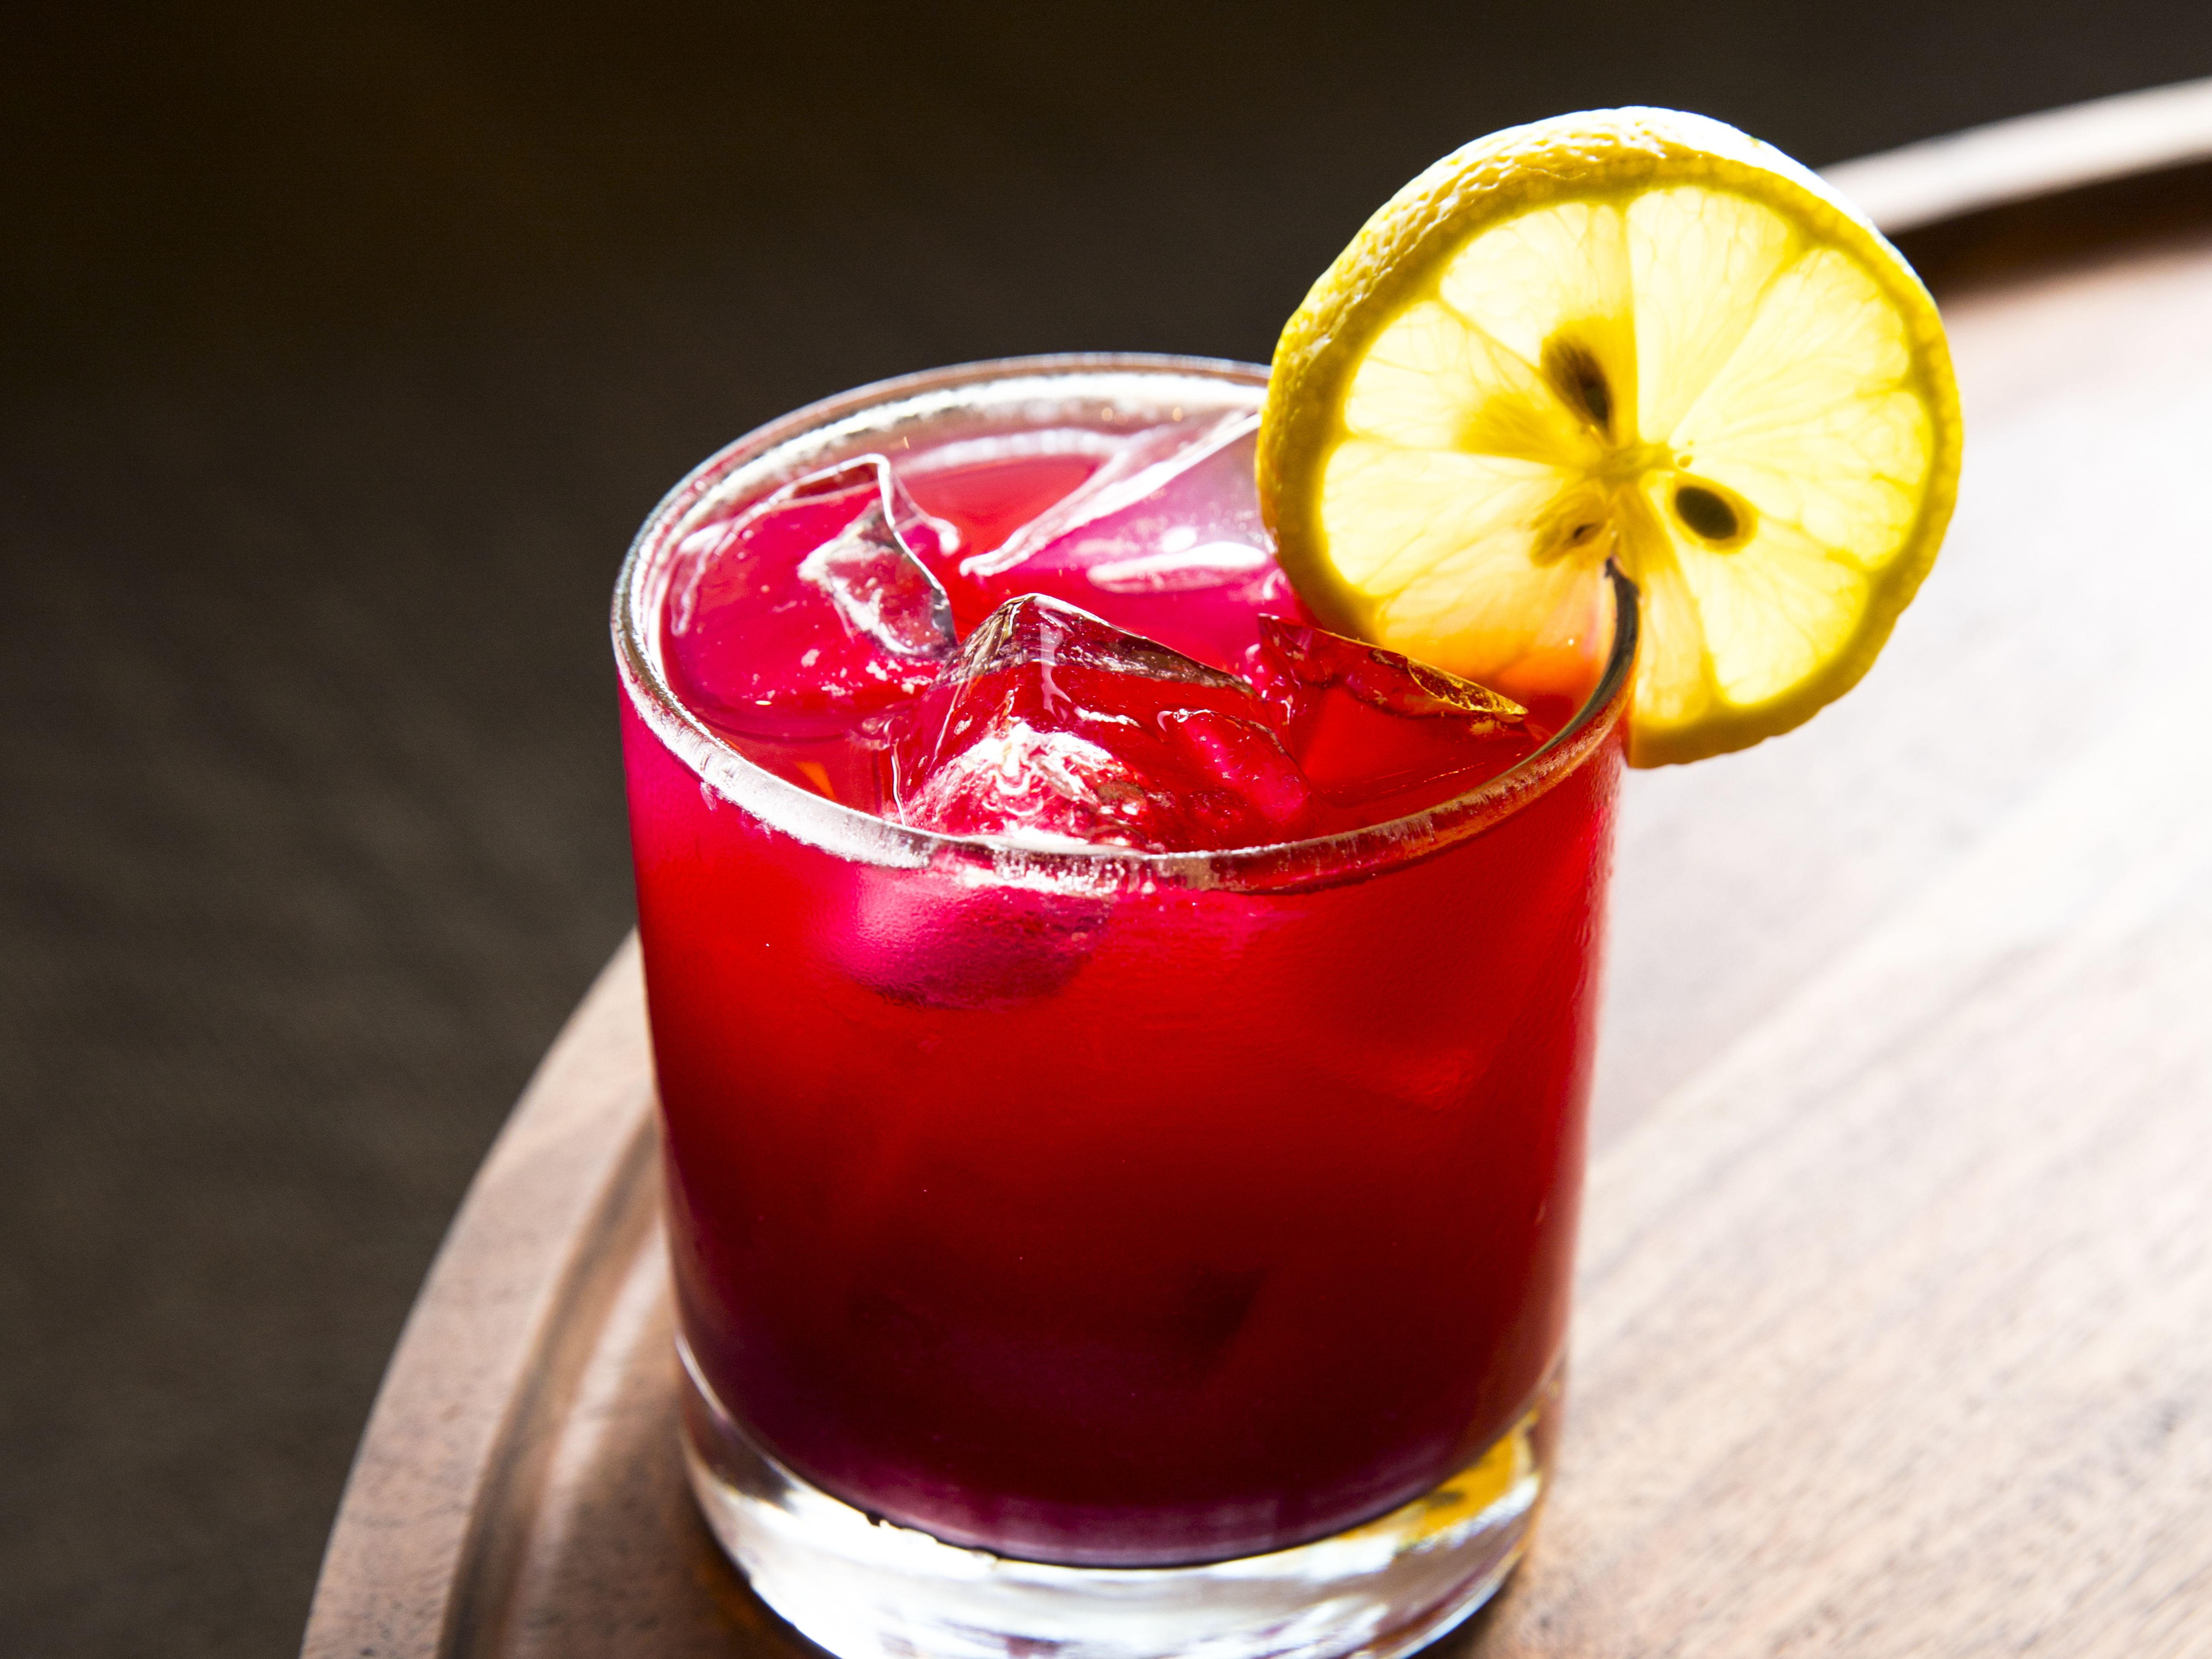 Just beet it margarita by julie soefer imjbvl